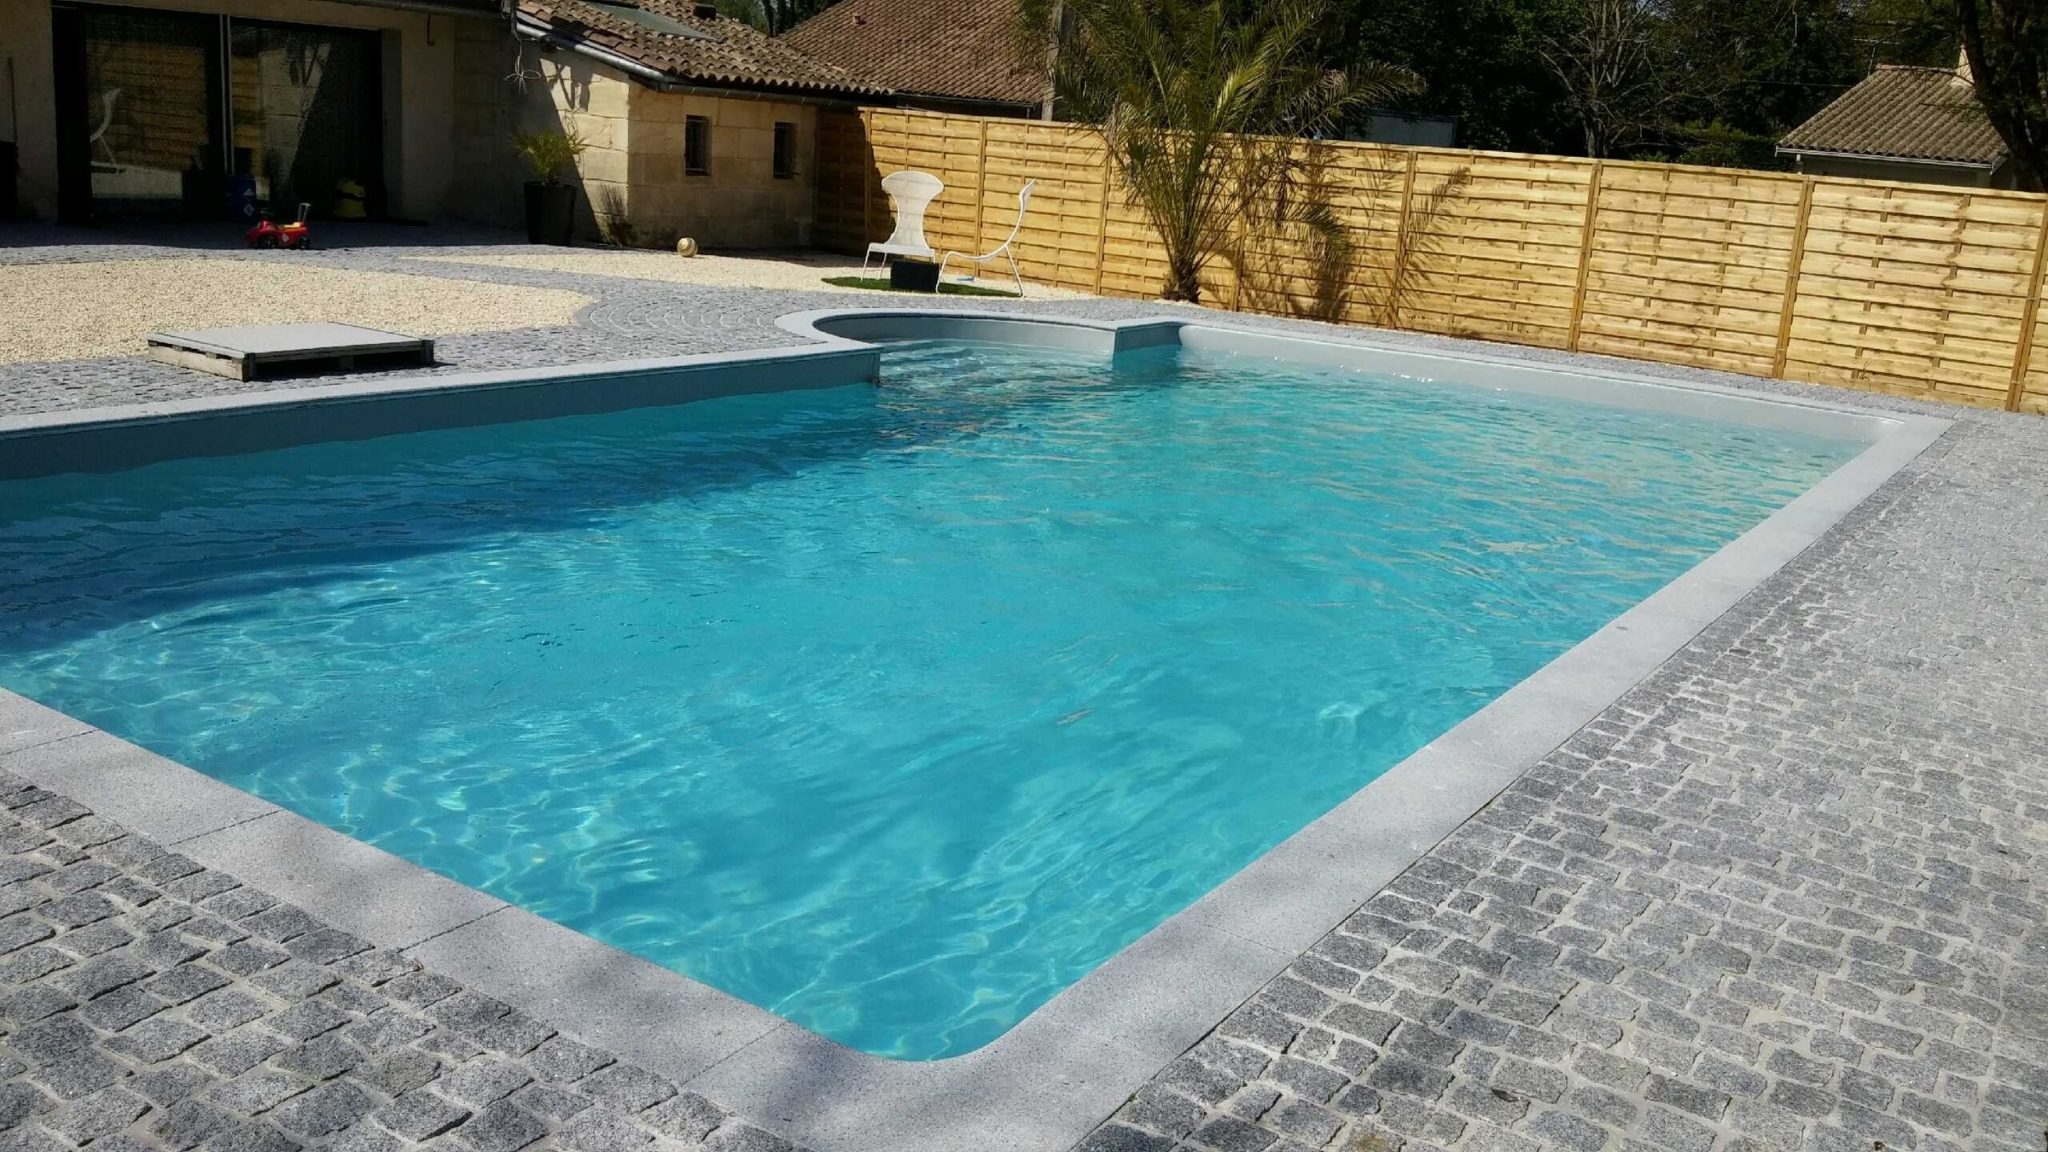 piscine avec entourage pav reference piscine constructeur de piscines en gironde. Black Bedroom Furniture Sets. Home Design Ideas